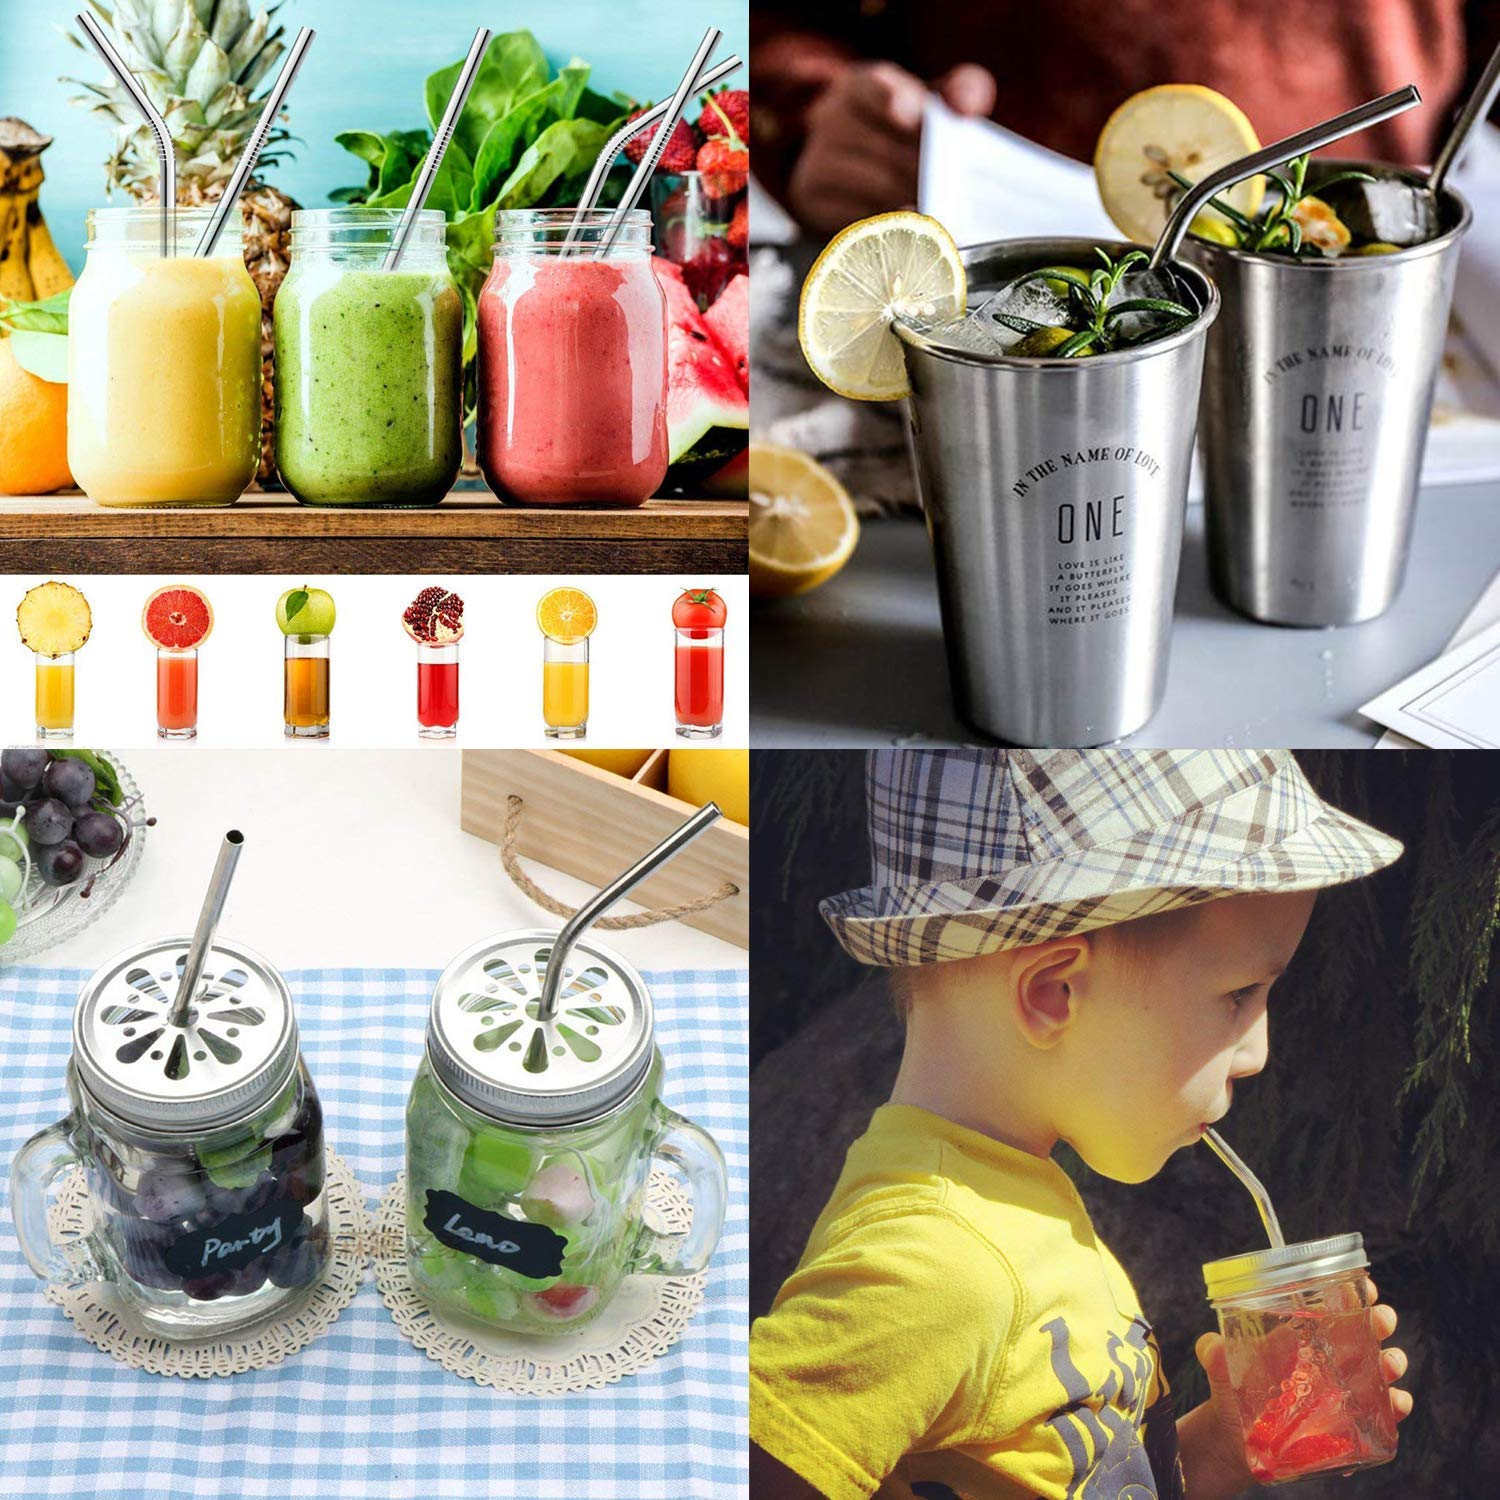 5 Straight+5 Bent+3 Brushes+10 Soft Silicone Tips+1carry bag) MultiColor Stainless Steel Straws Set of 13 10.5 8.5 Reusable Straws Metal Straws for 30//20oz Tumbler FDA-Approved Drinking Straws